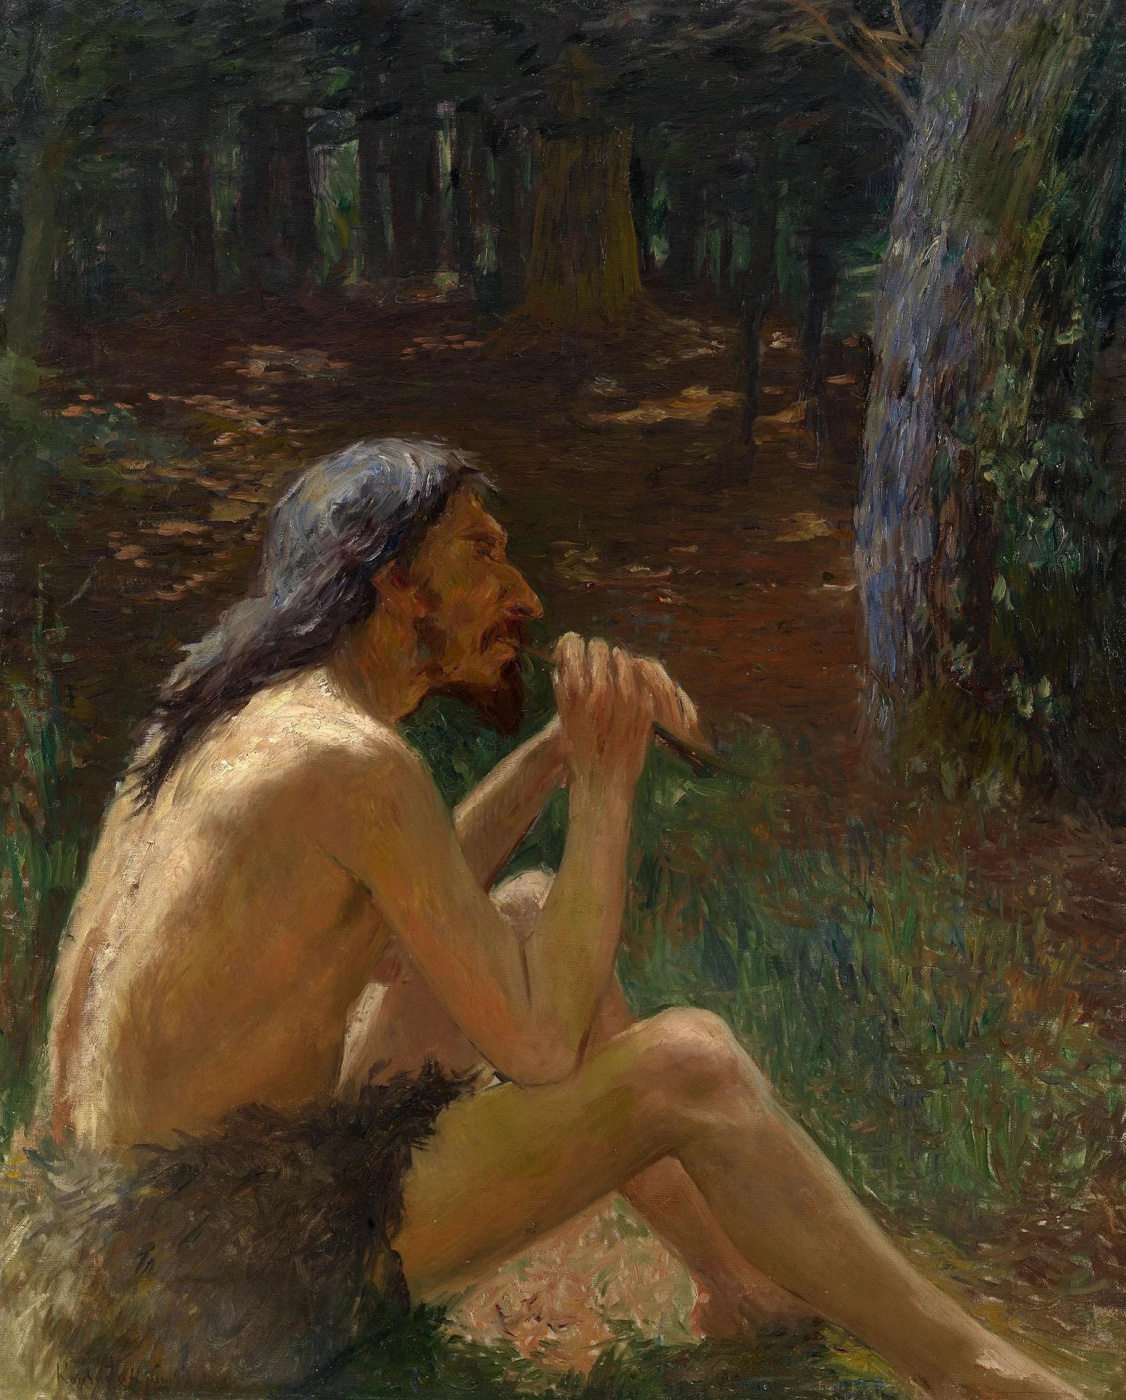 Konstantin Pavlovich Kuznetsov. Caveman playing the flute